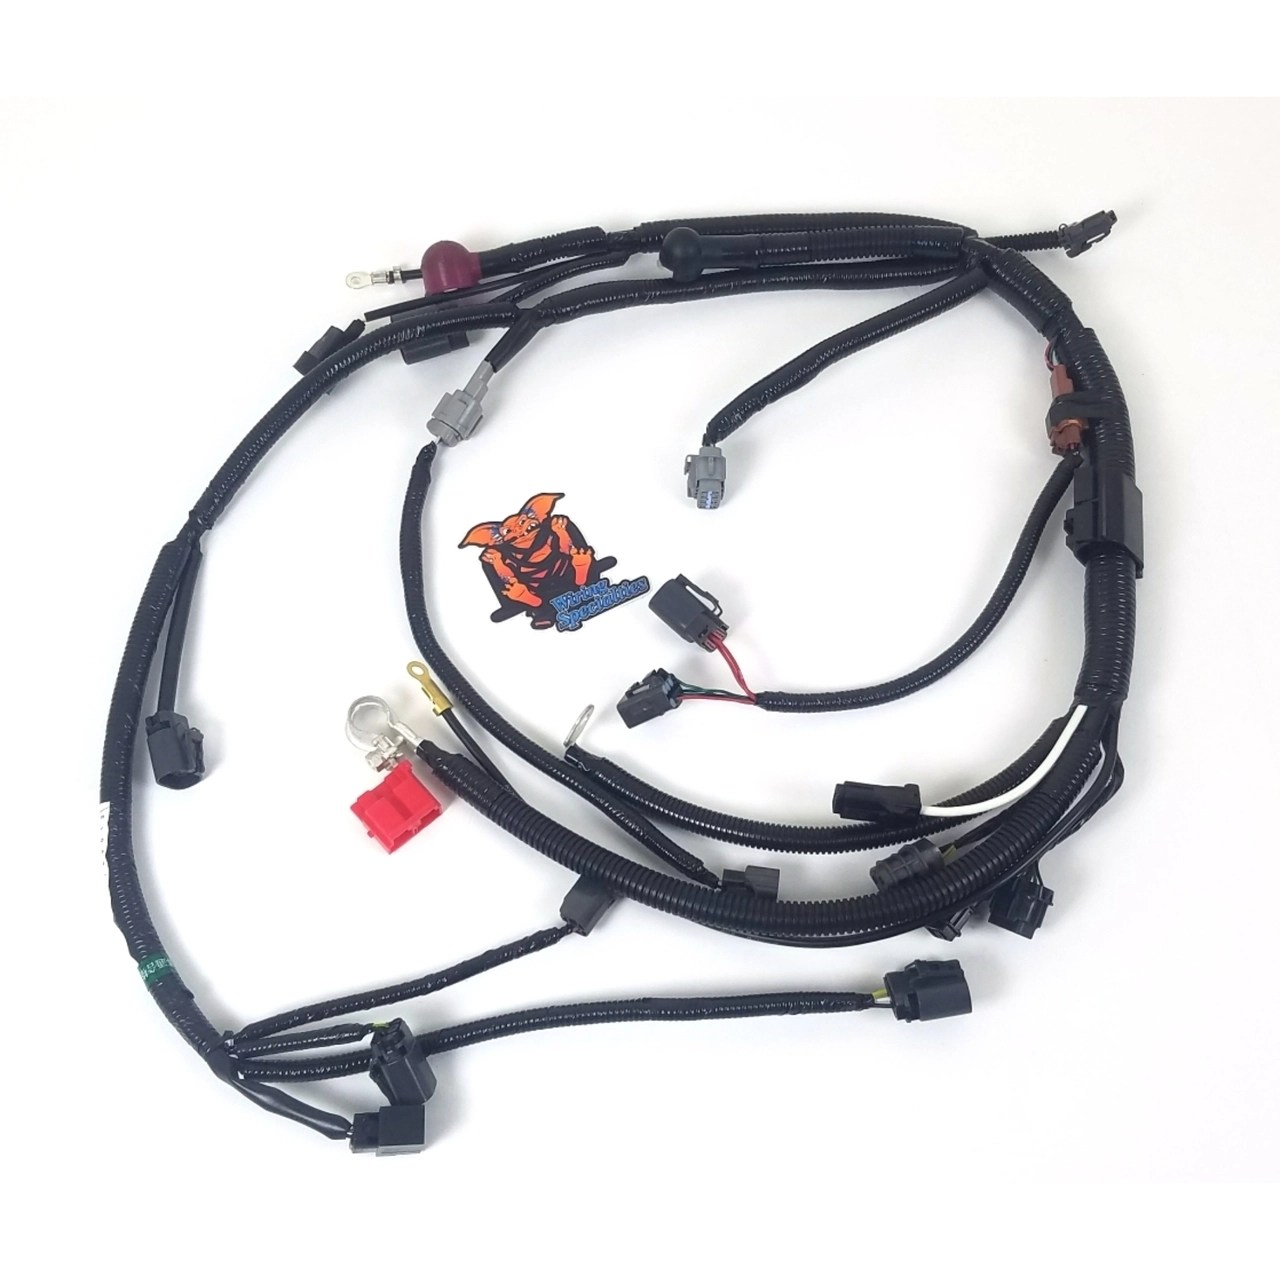 hight resolution of wiring specialties s14 ka24de lower harness for 240sx s14 enjuku racing parts llc